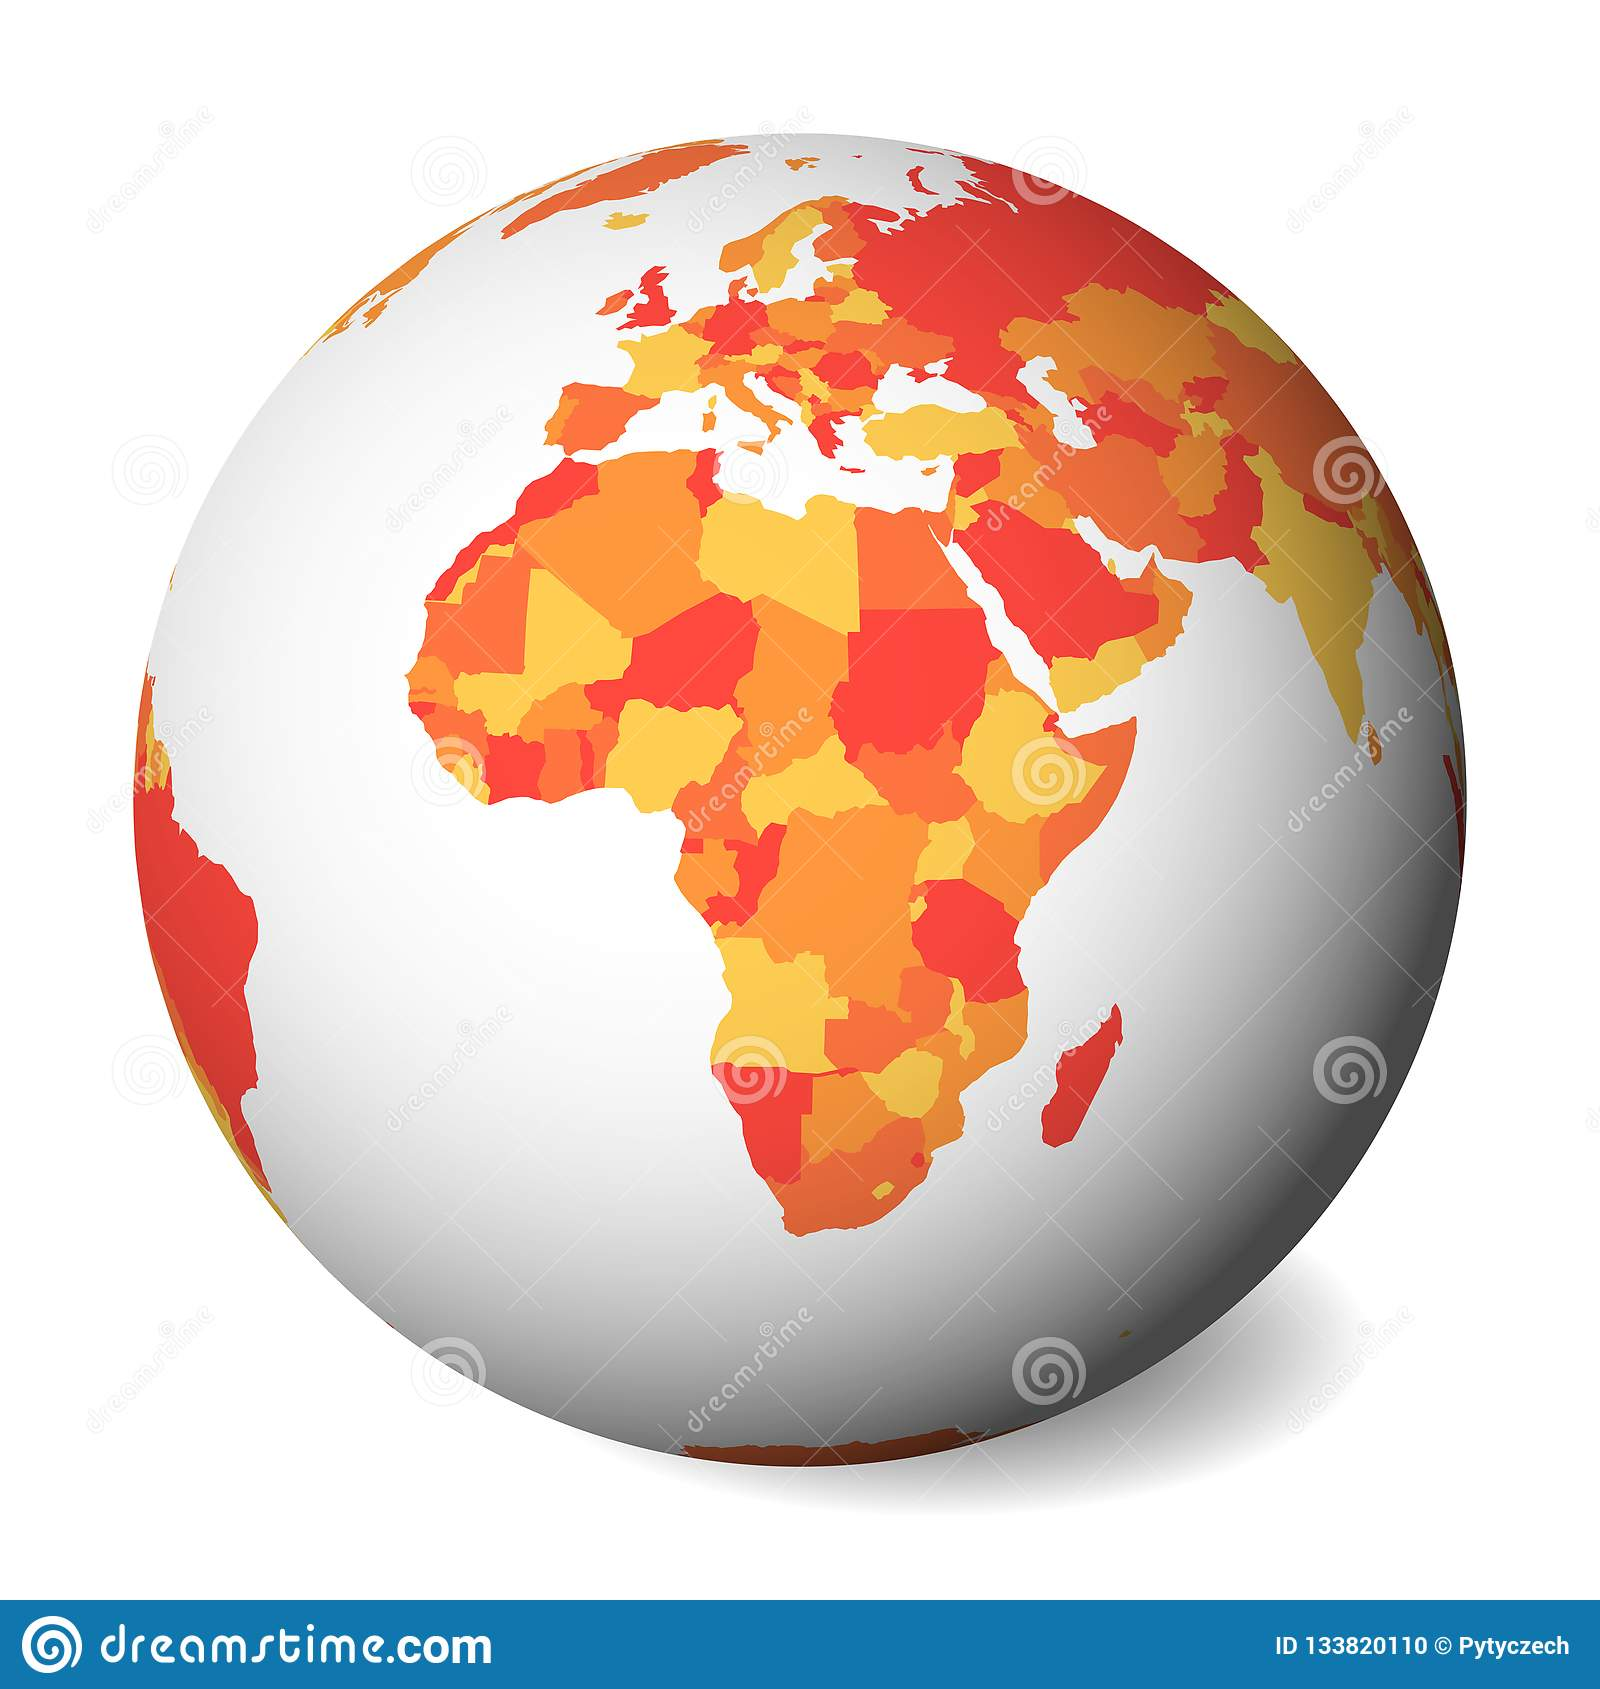 Blank Political Map Of Africa. 3D Earth Globe With Orange Map